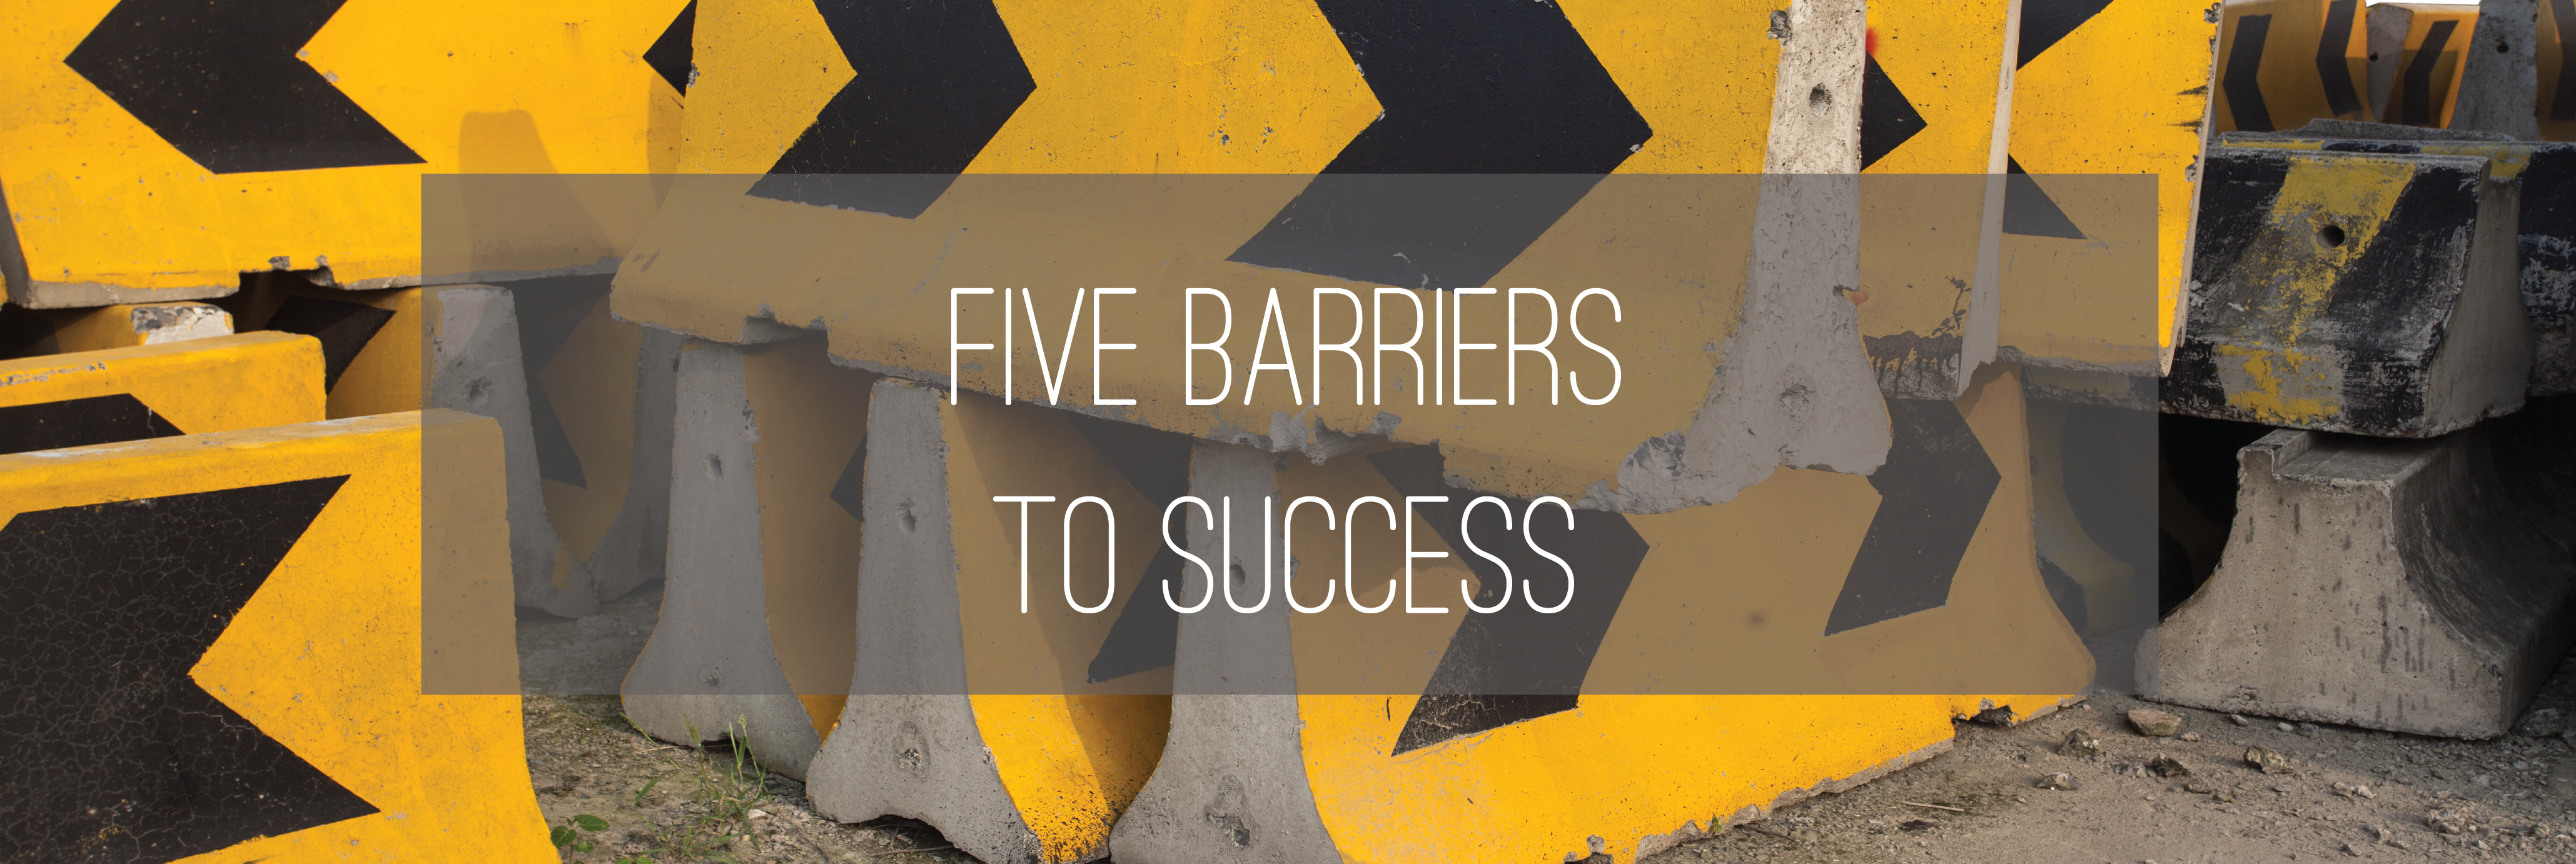 graduate school overcoming barriers to success Breaking down the barriers to immigrant students' success at  face a major obstacle to success at school when they are  not every university graduate will.